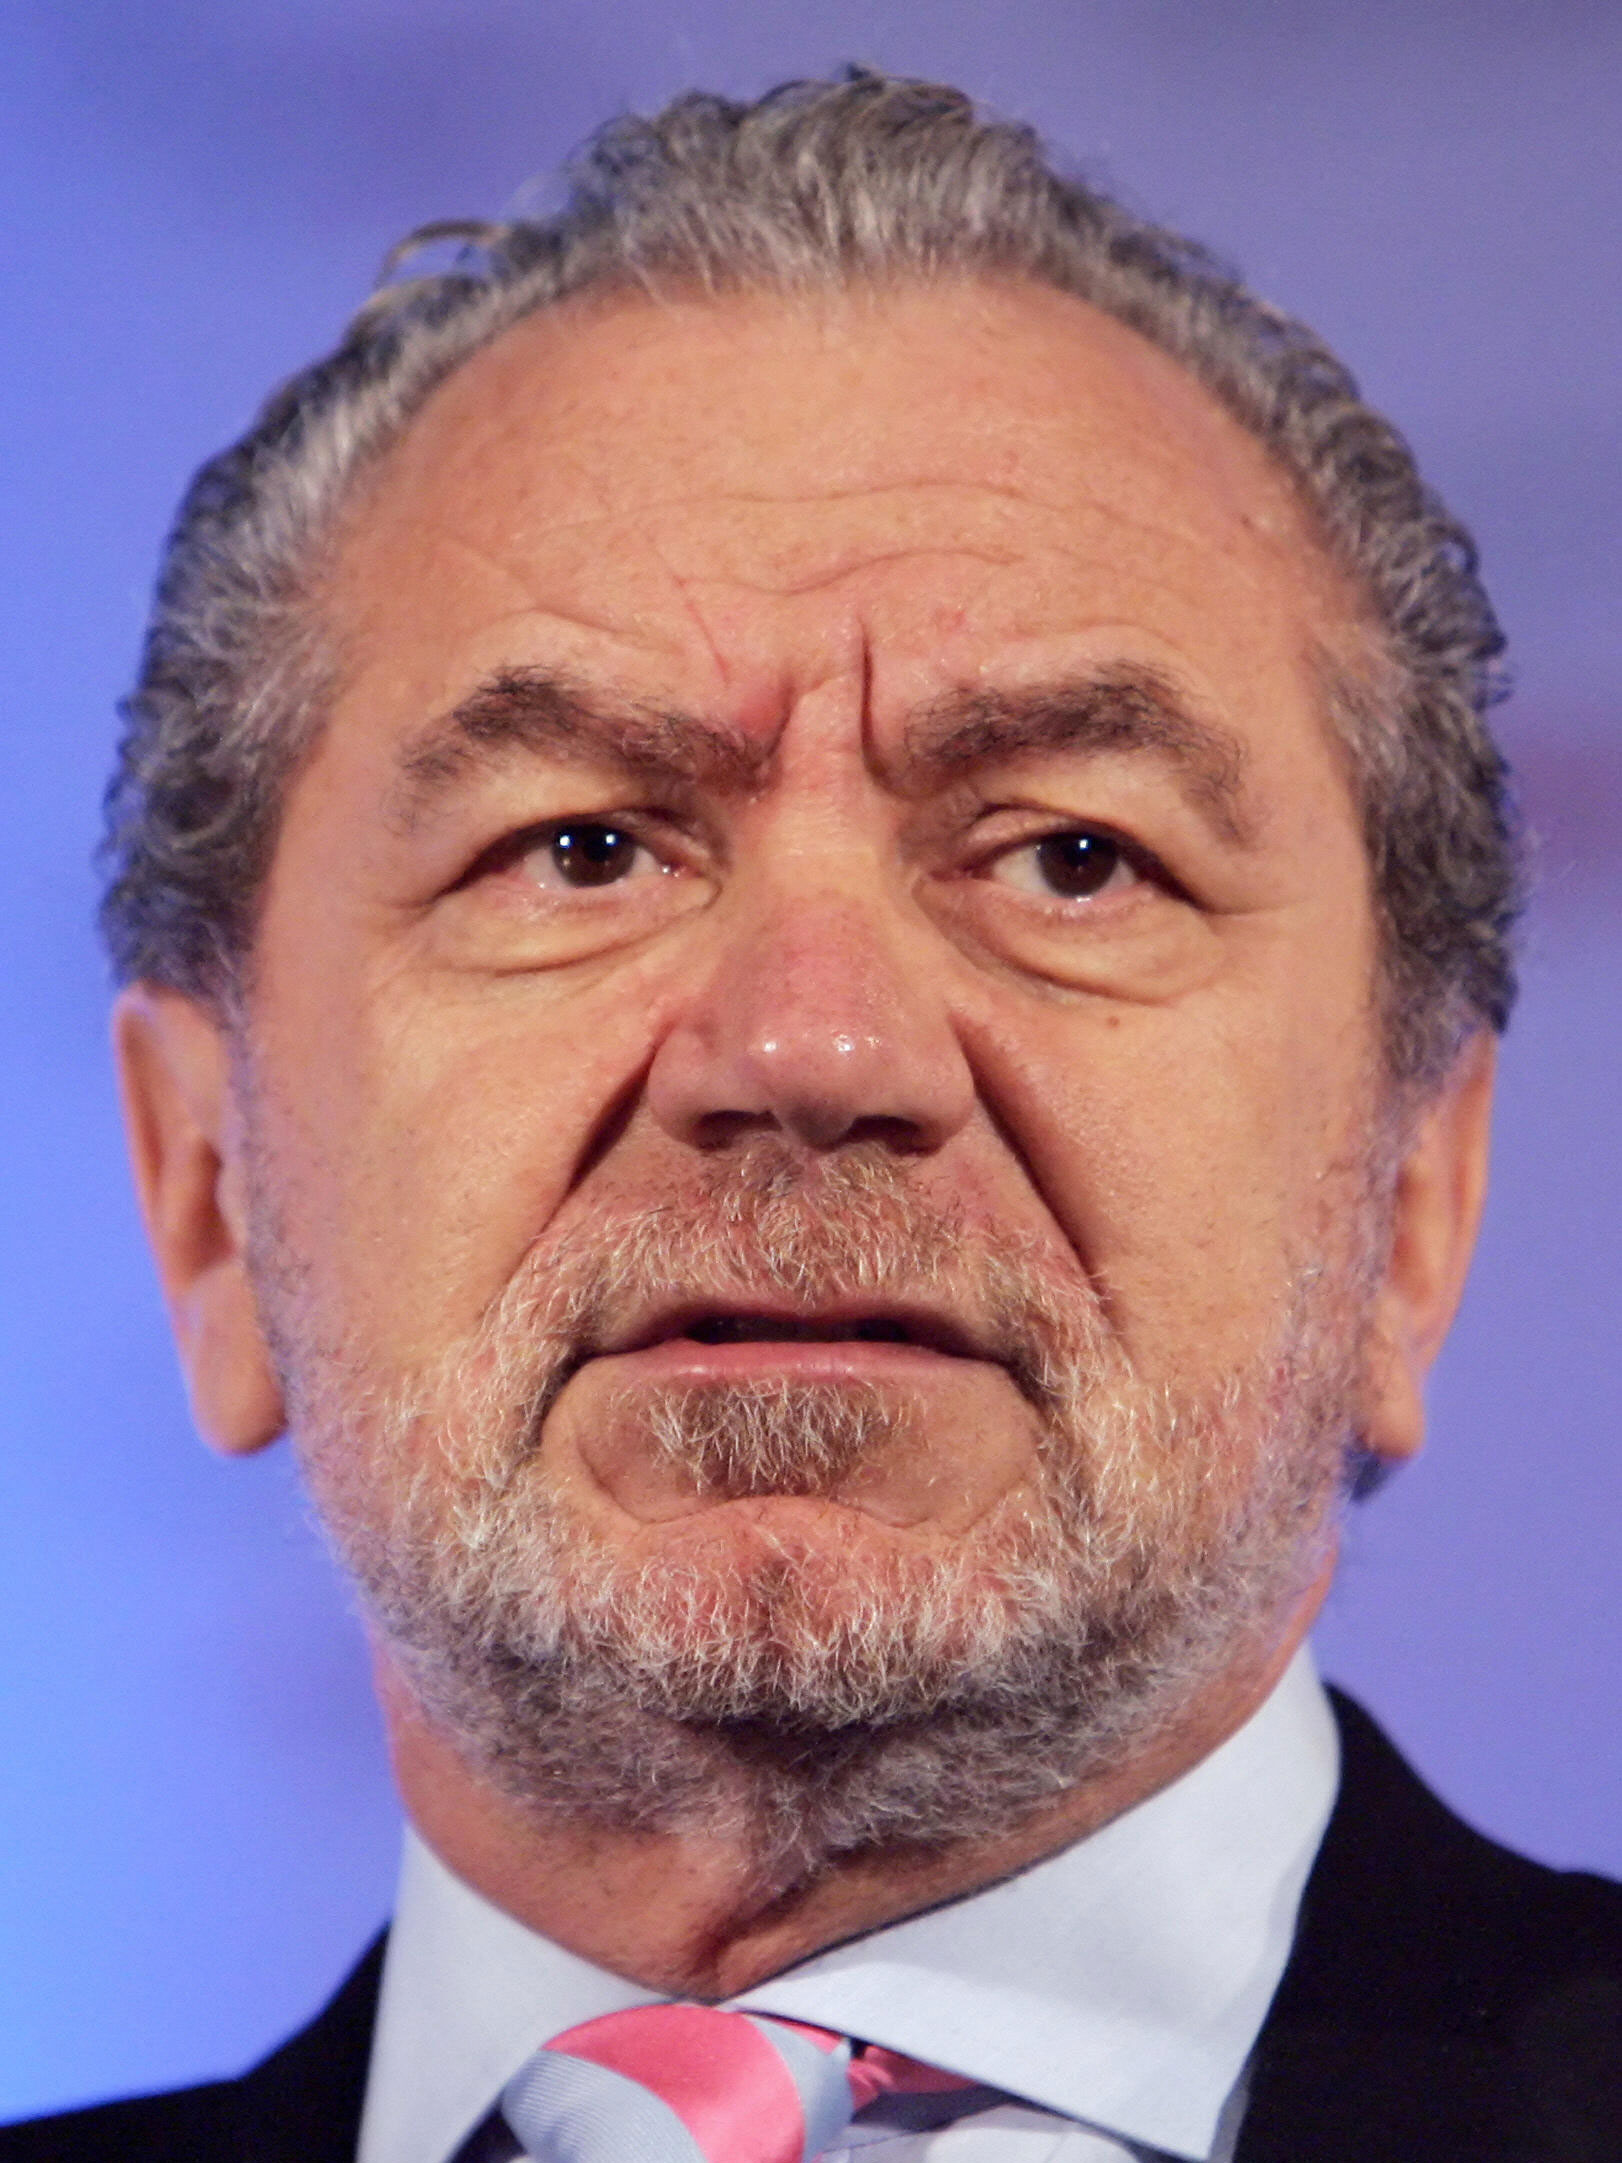 The Apprentice sparks controversy amongst viewers amid sexist remarks